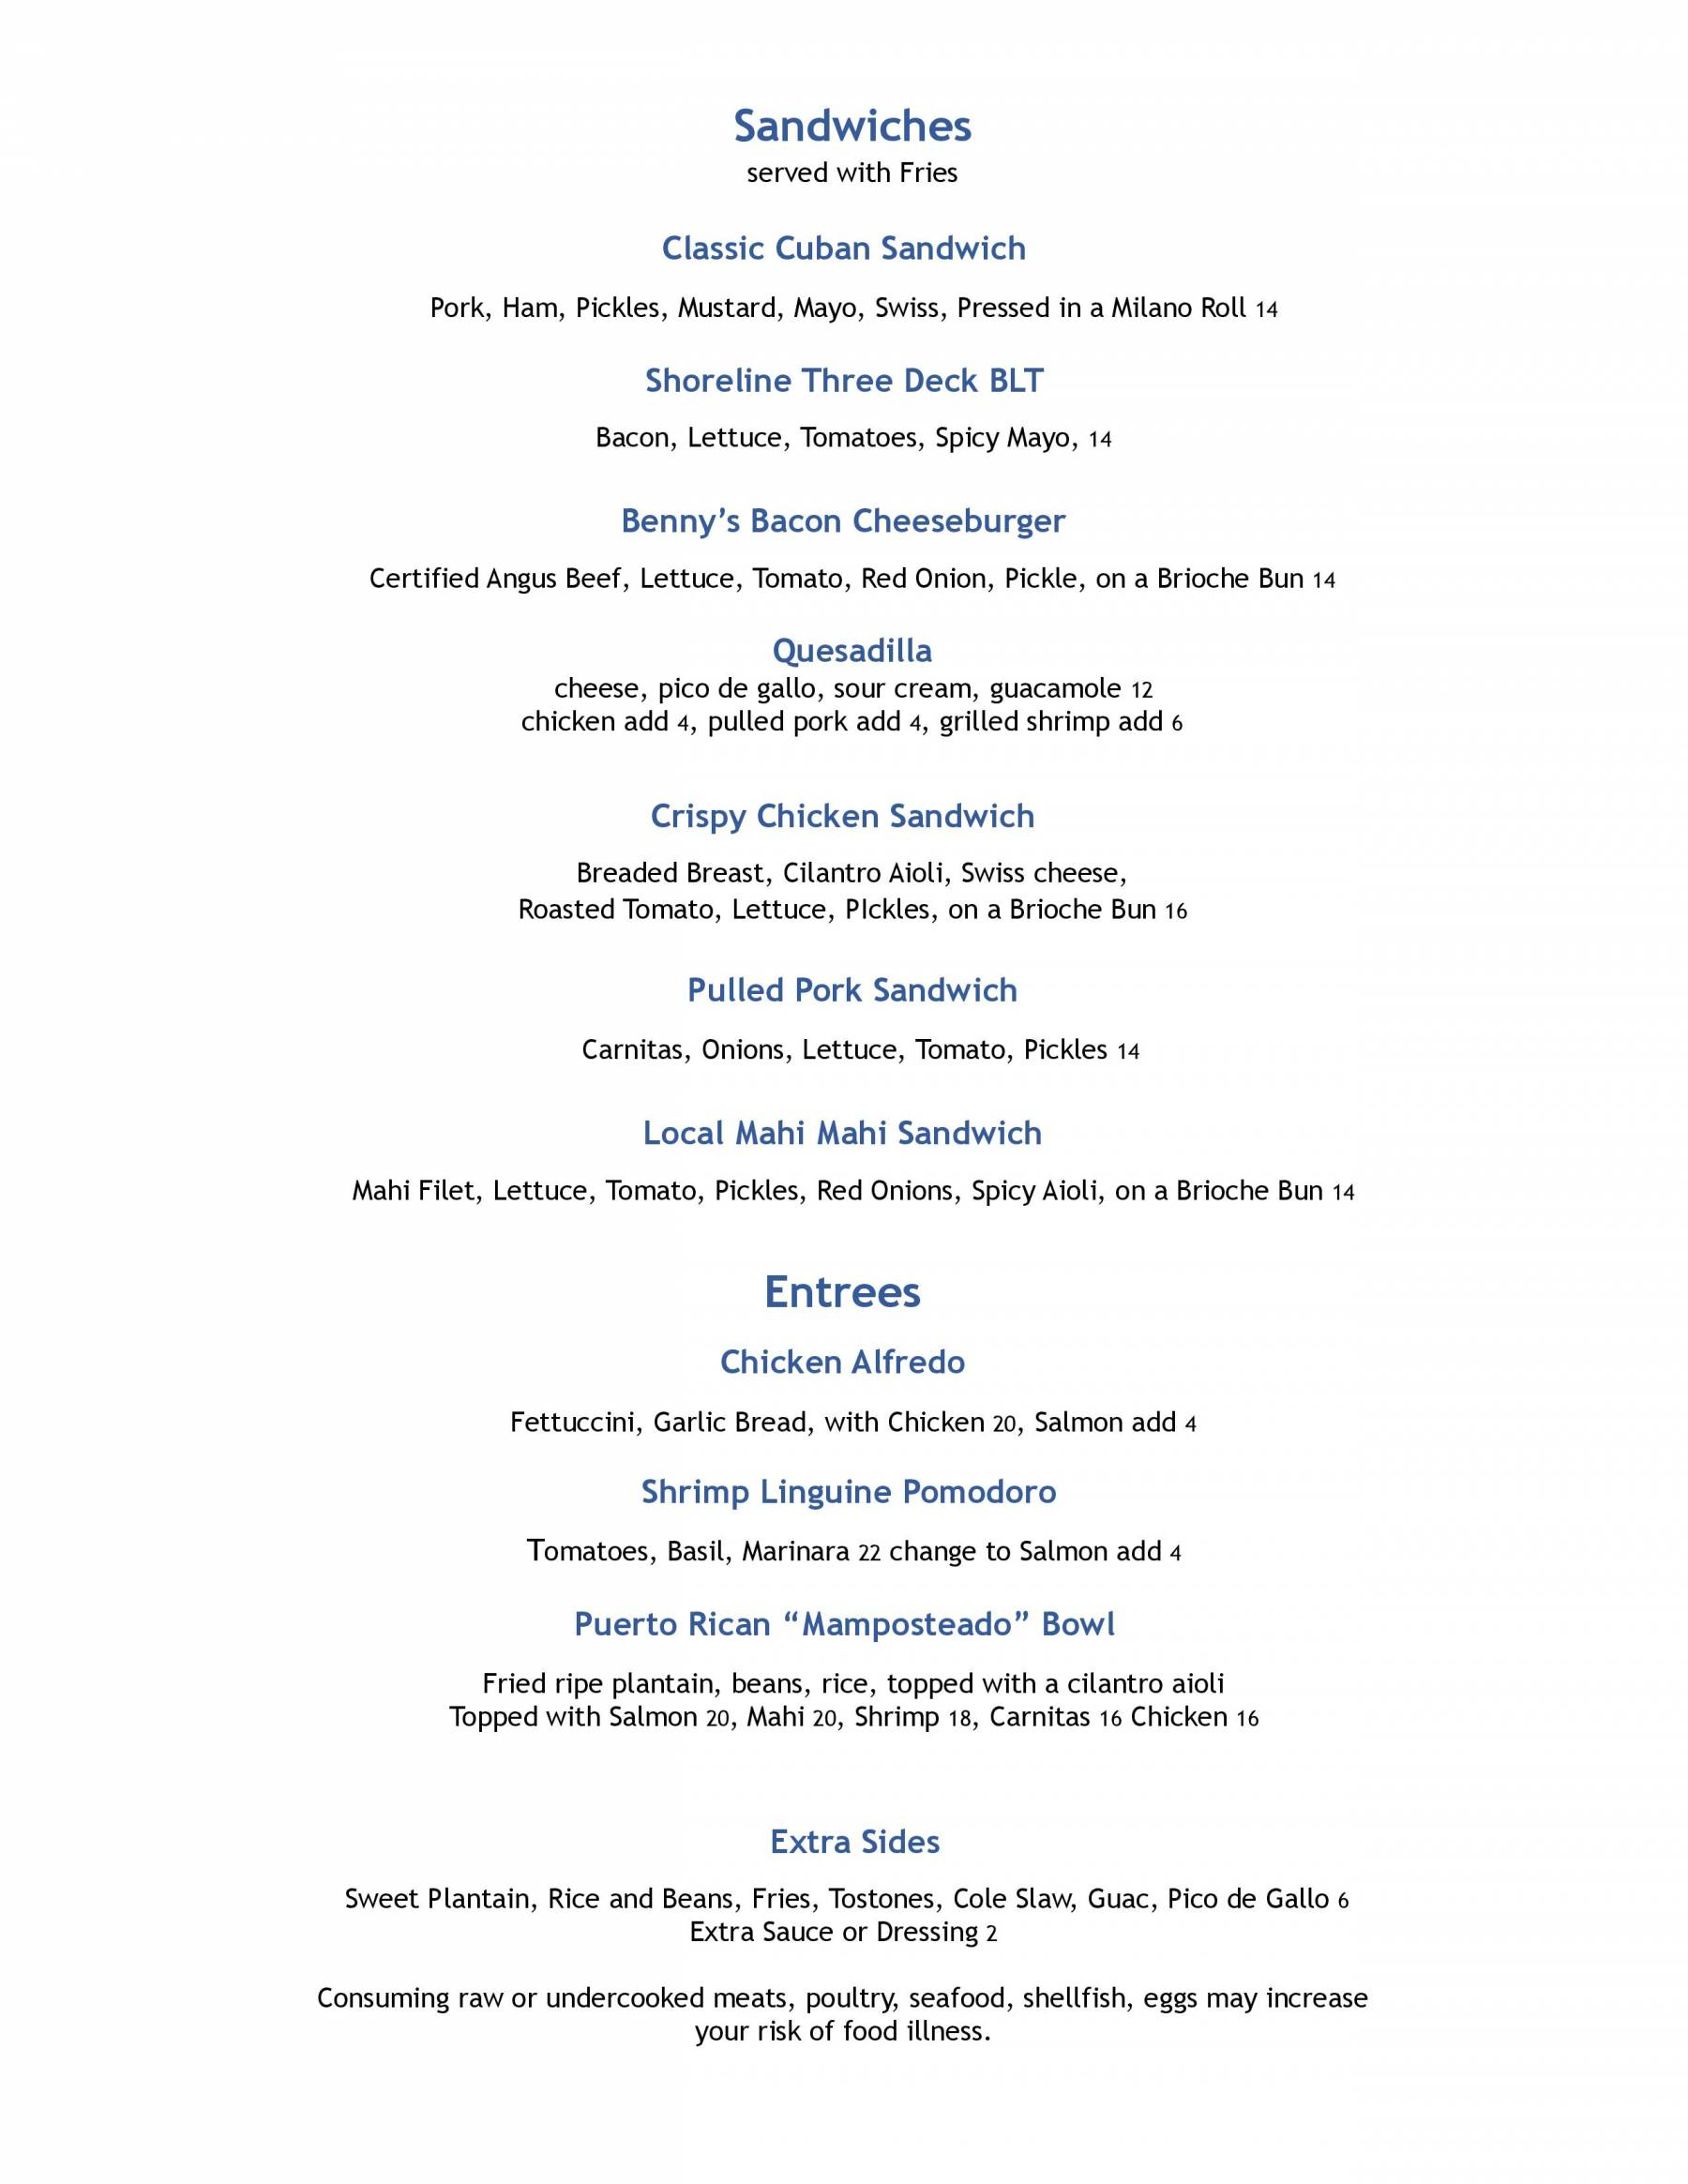 Shoreline Lunch & Dinner Menu